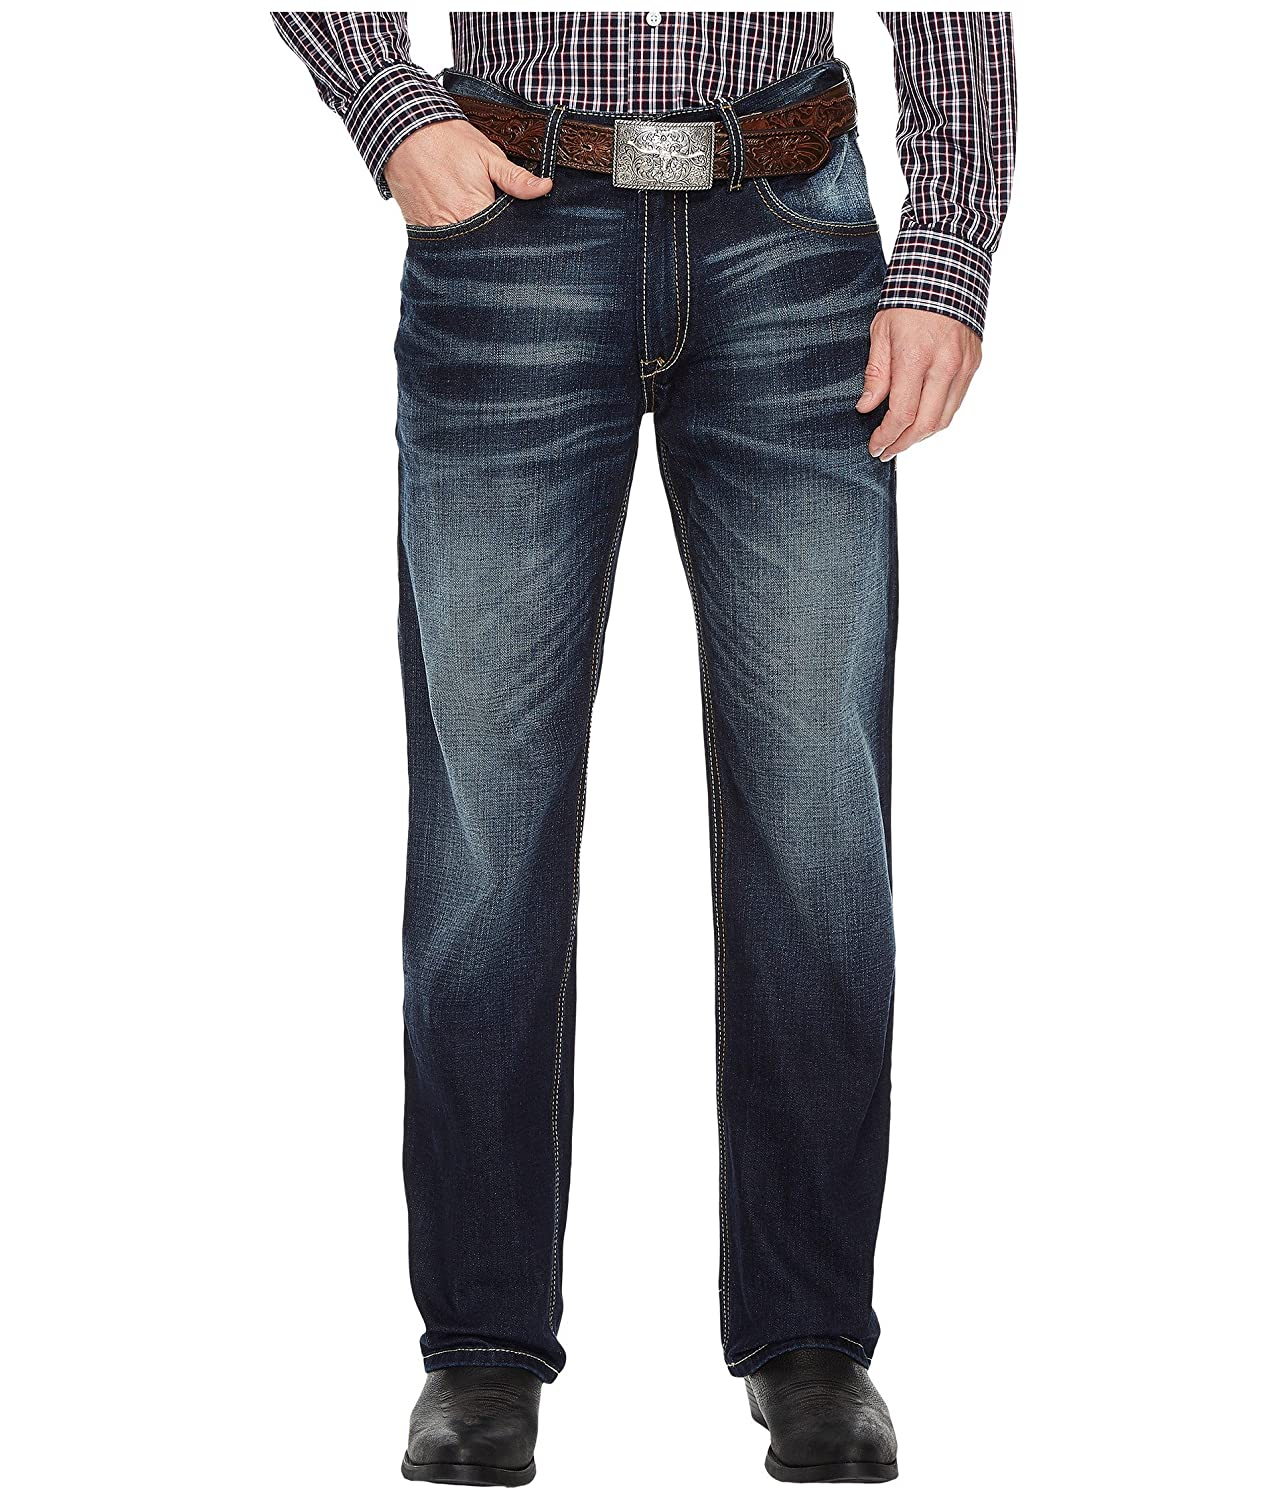 Ariat Men's M4 Low Rise Boot Cut Jean Ariat Men's Sportswear M4_AUSTIN_M_APP